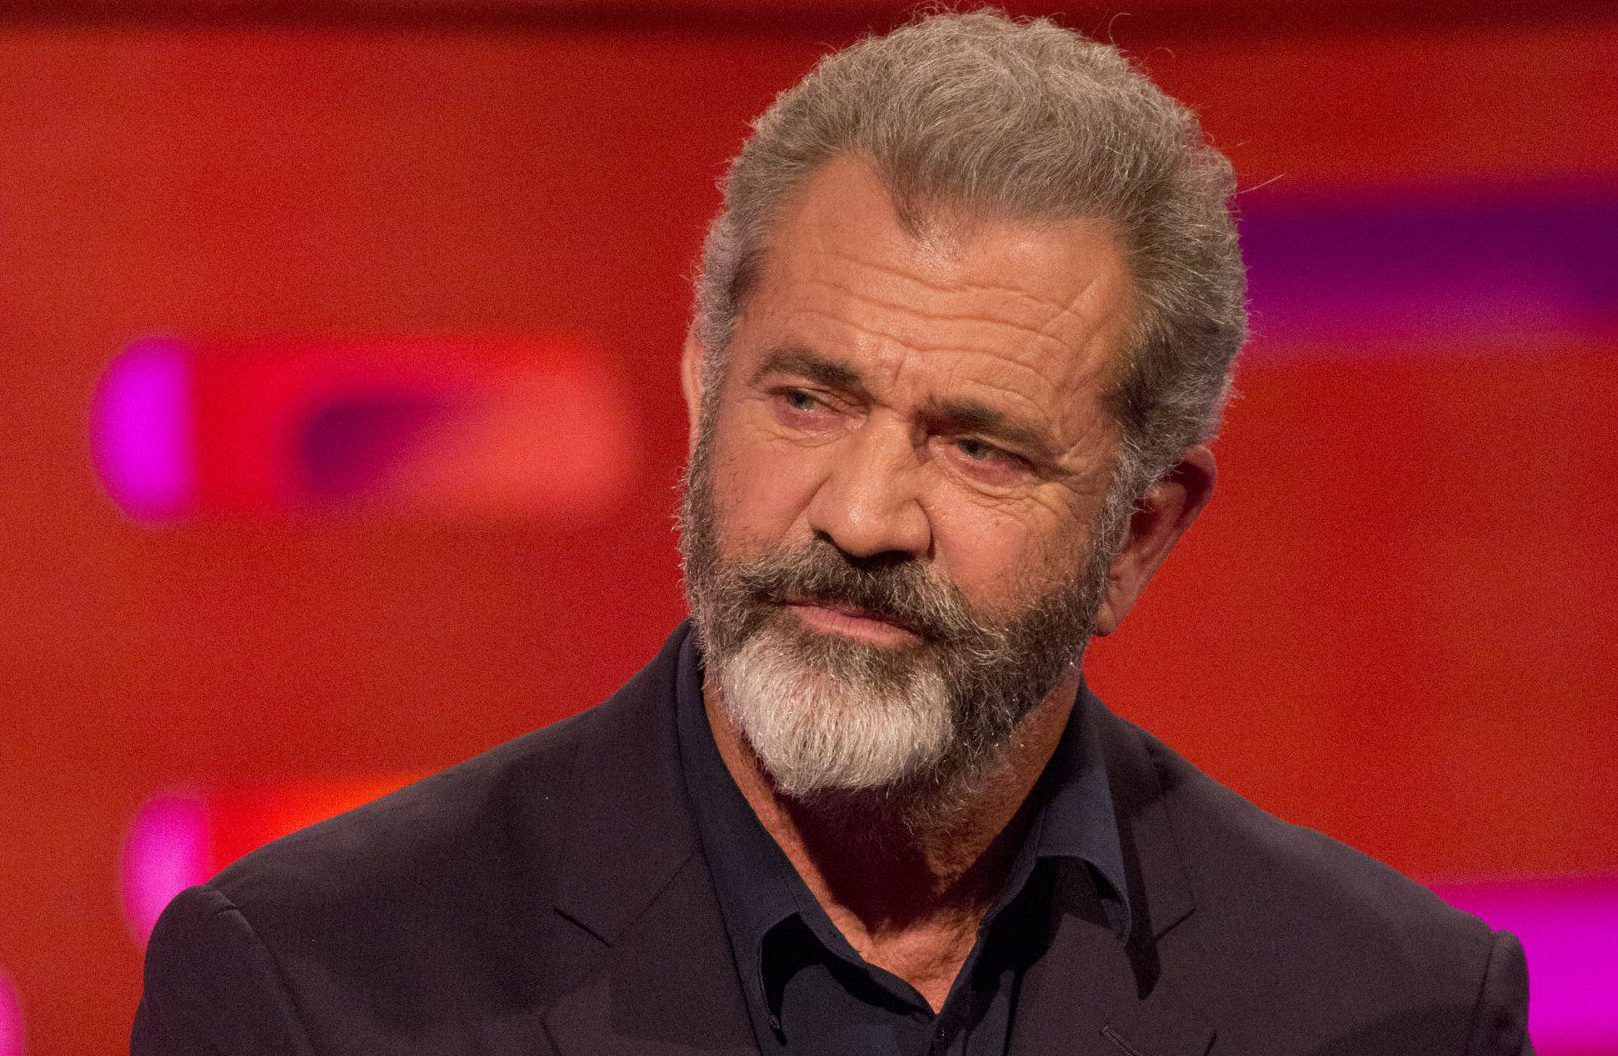 Mel Gibson during the filming of the Graham Norton Show at The London Studios, south London, to be aired on BBC One on Friday evening. PRESS ASSOCIATION Photo. Picture date: Thursday November 16, 2017. See PA story SHOWBIZ Norton. Photo credit should read: PA Images on behalf of So TV.